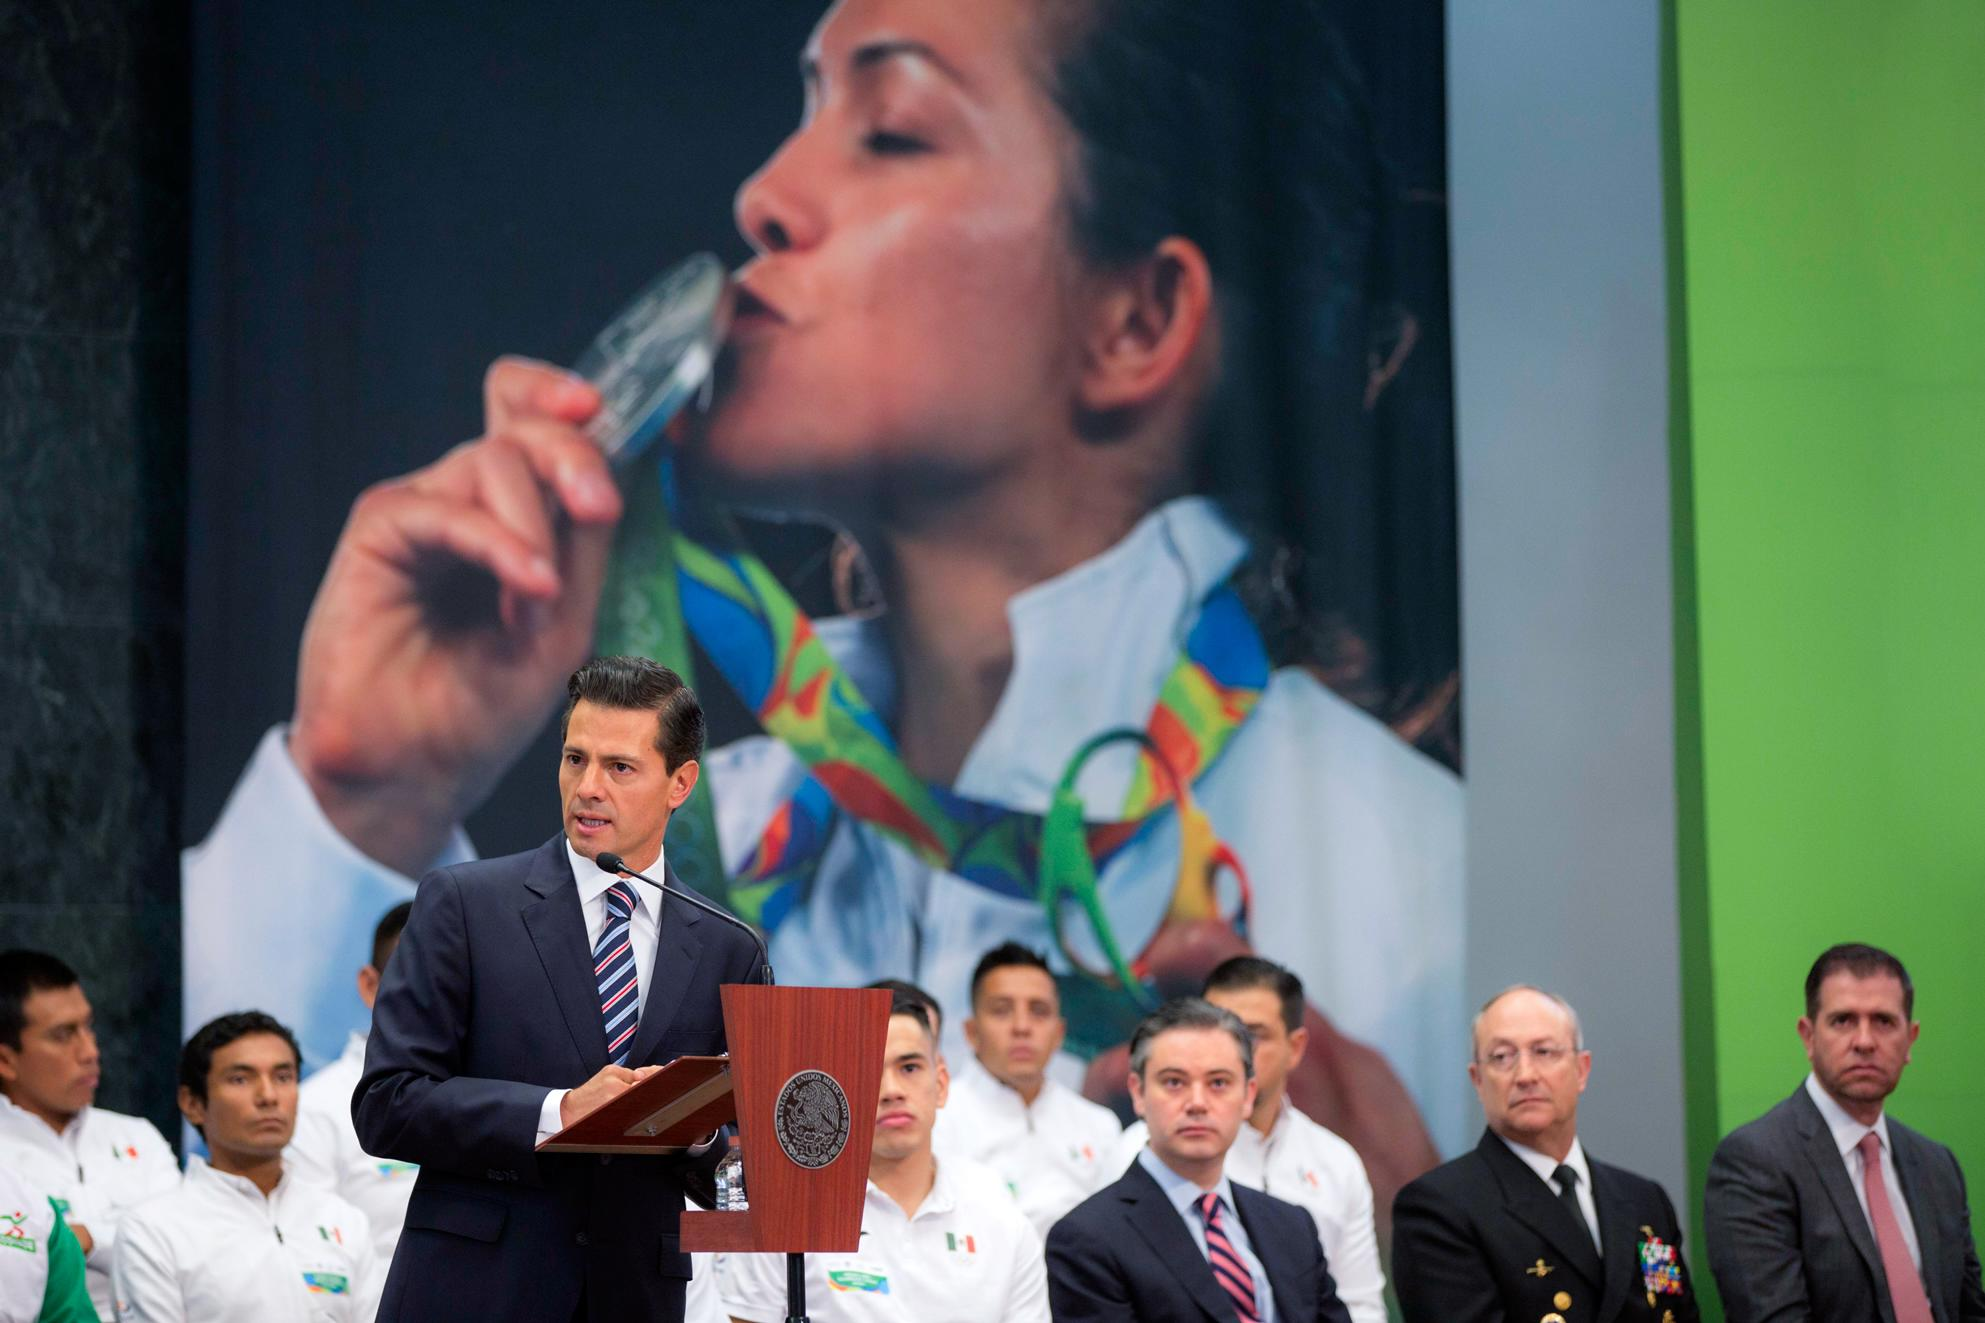 The president met with members of the Mexican delegation who participated in the 2016 Rio Olympics.